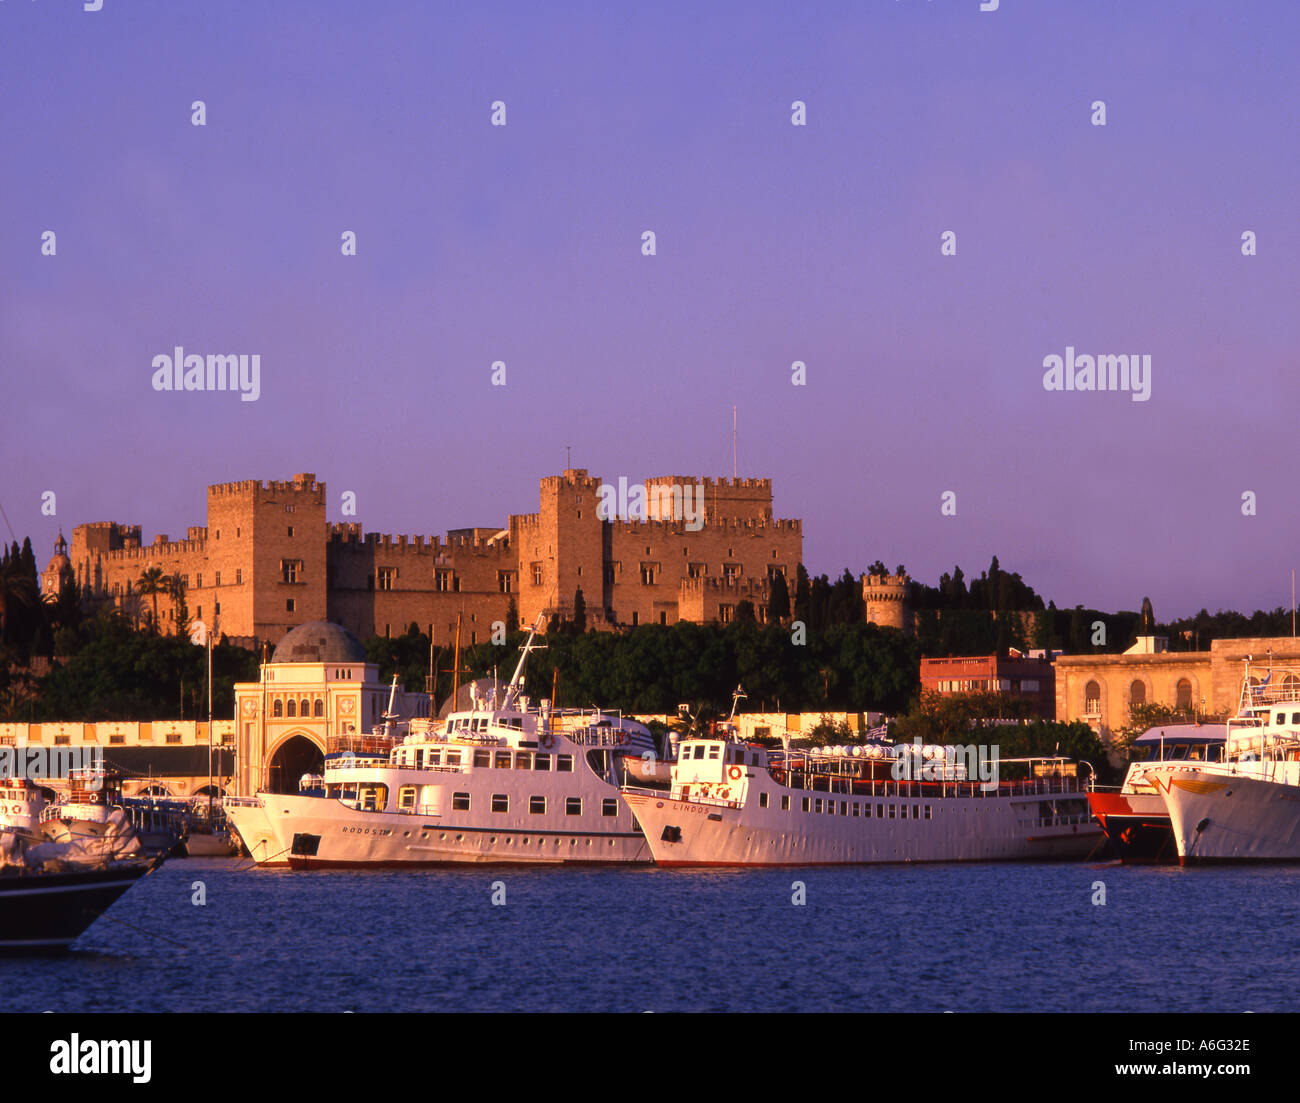 Greece Rhodos palace - Stock Image